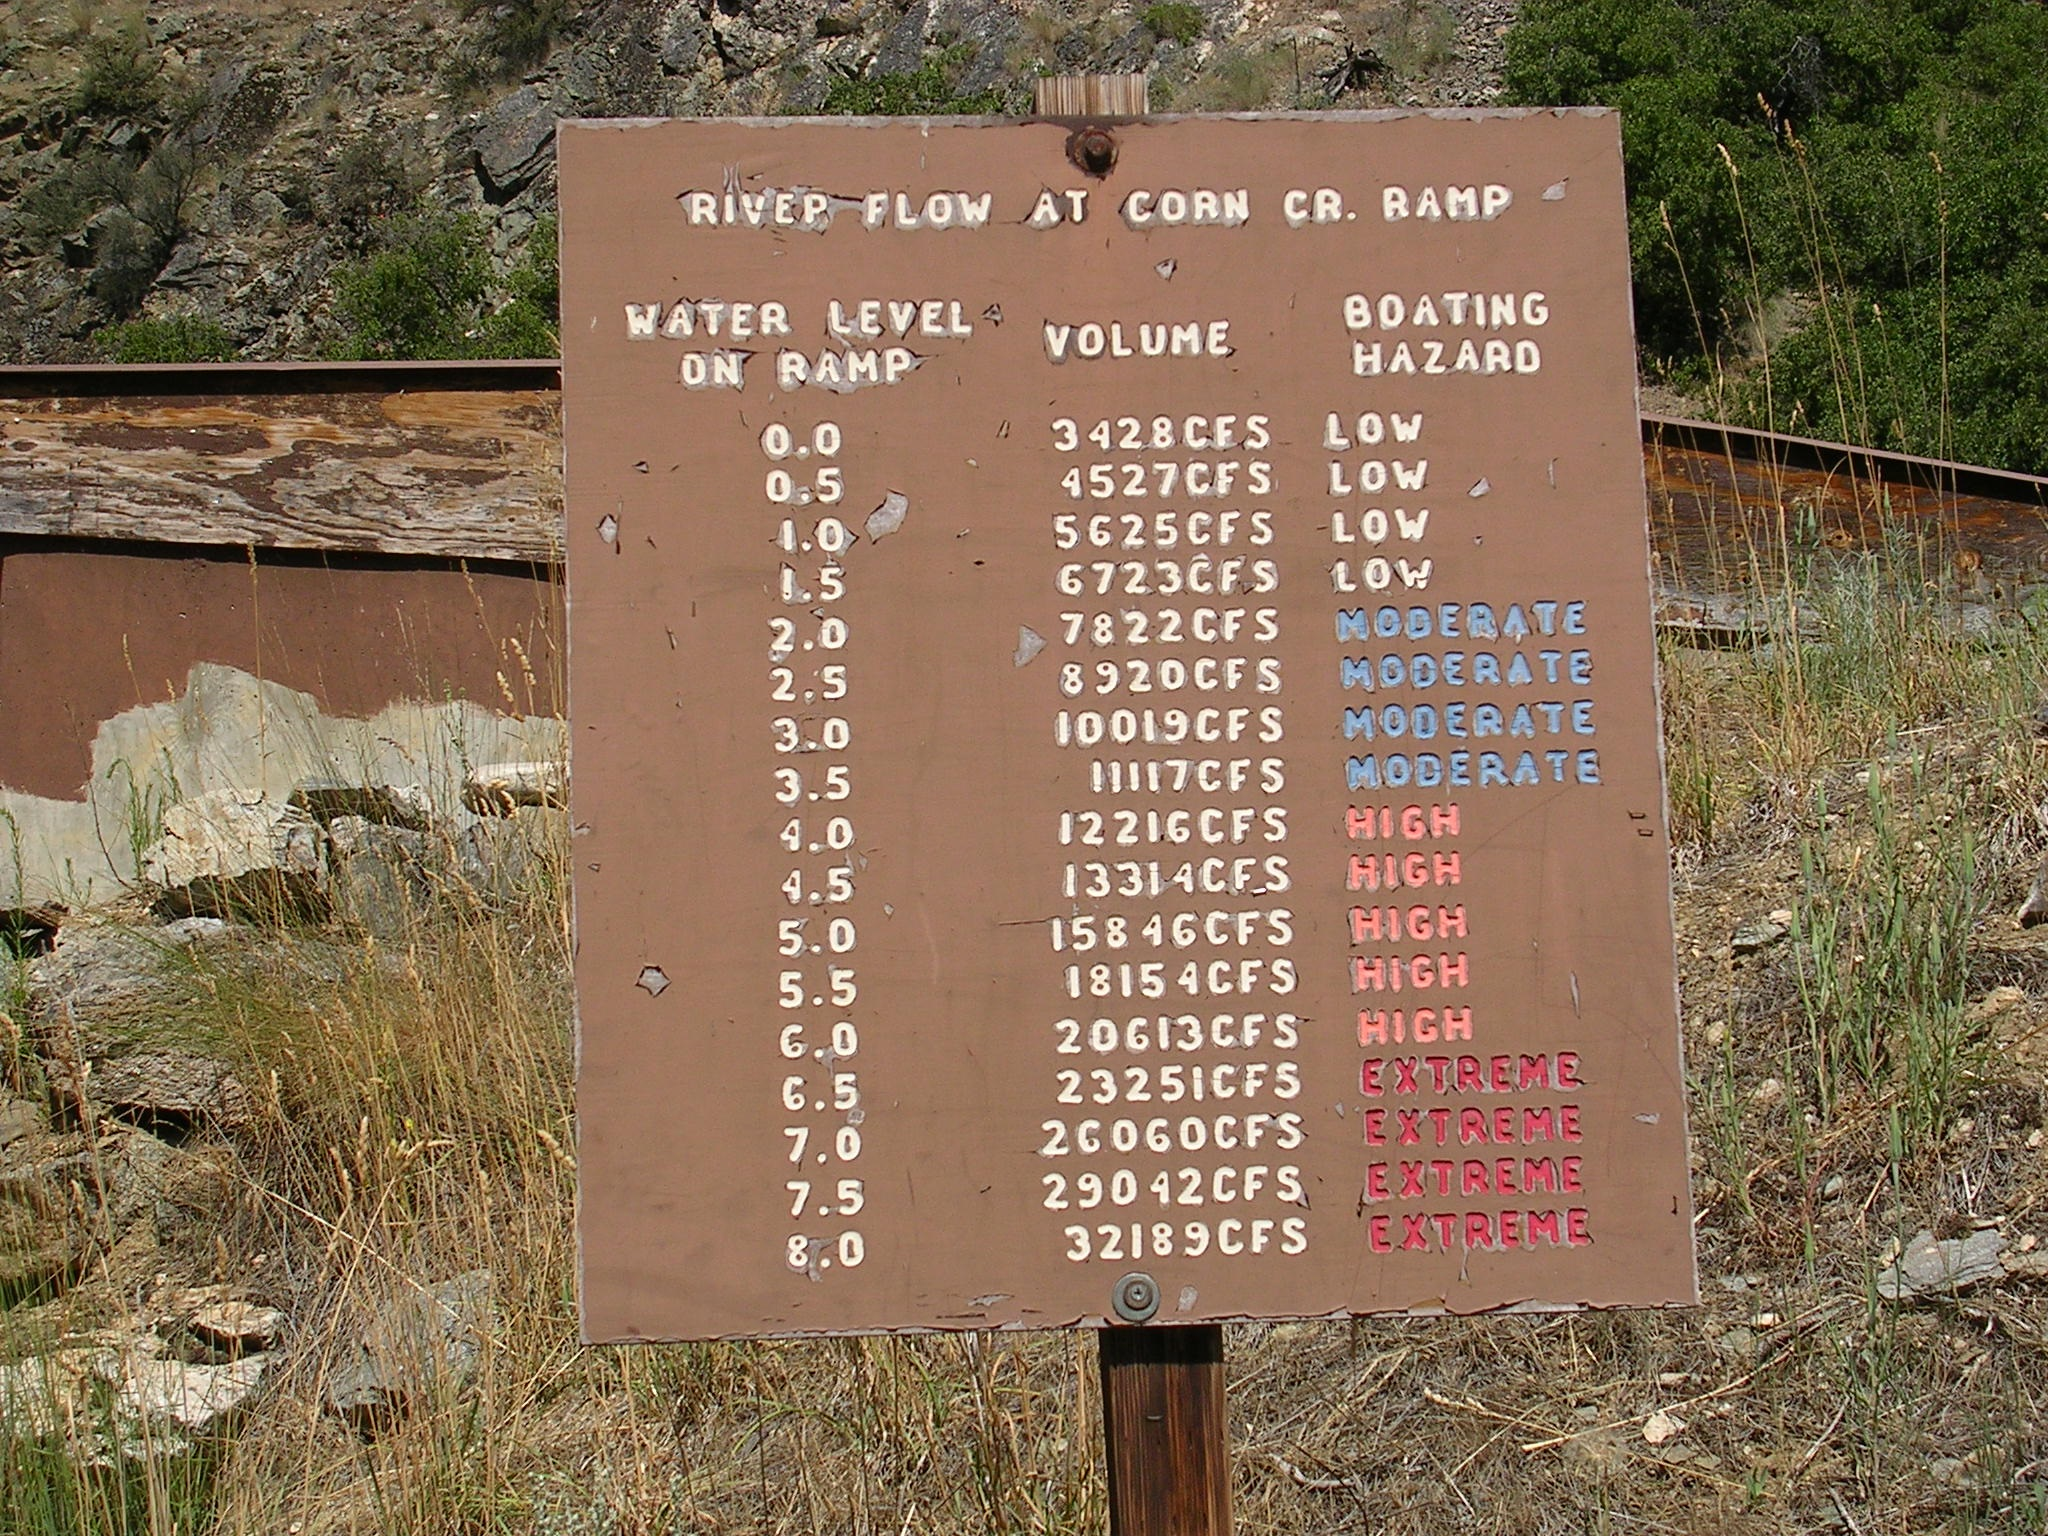 Click image for larger version  Name:Corn Creek sign.jpg Views:235 Size:1.21 MB ID:33143